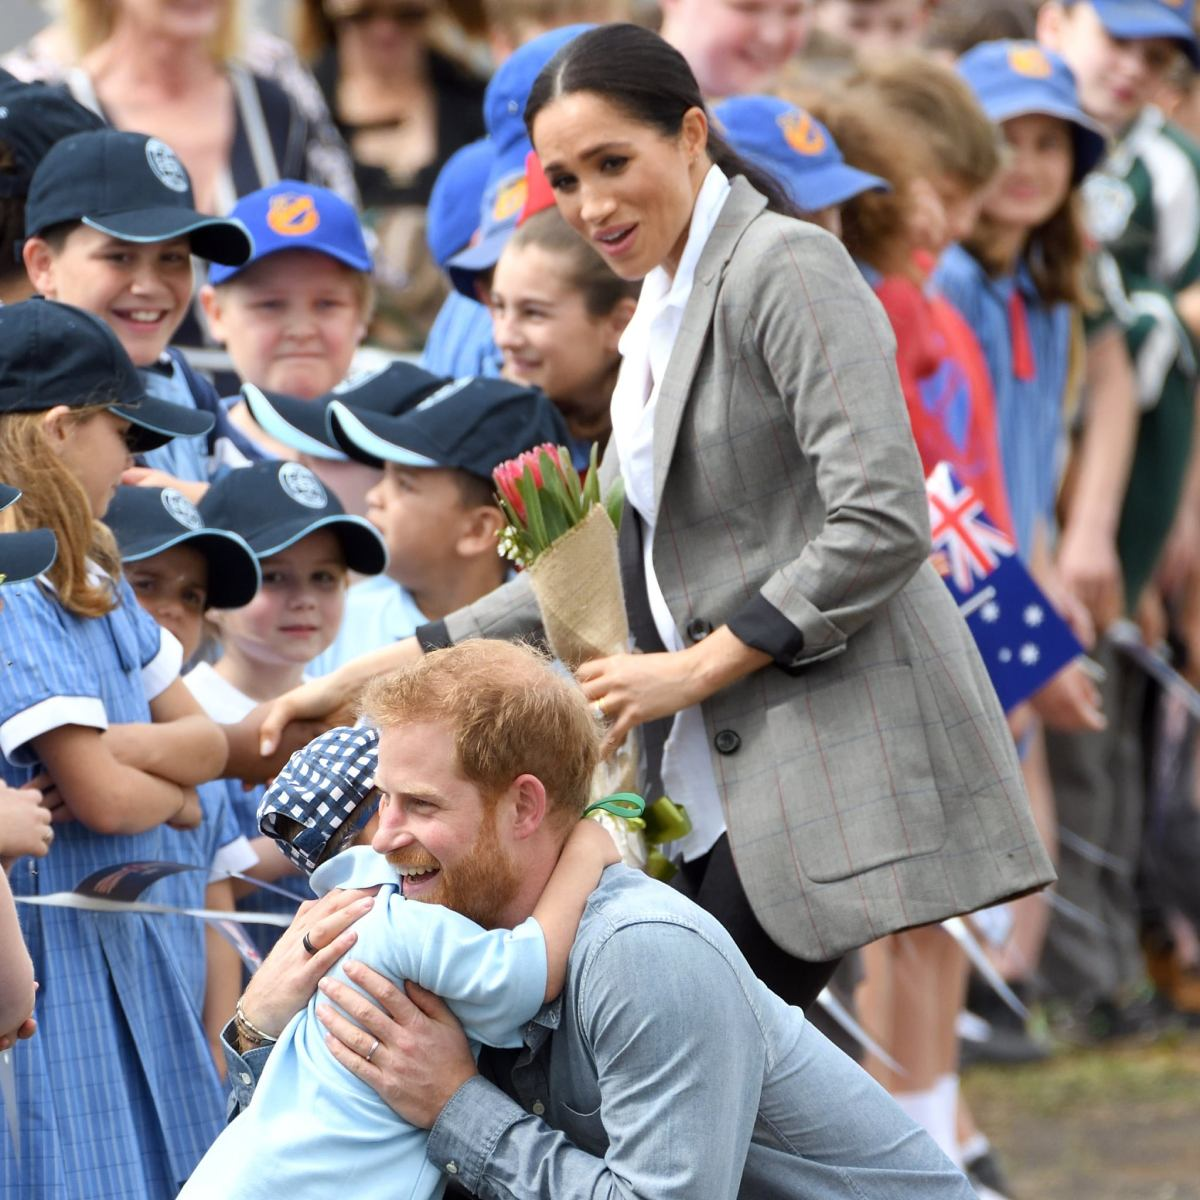 Prince-Harry-Meghan-Markle-Kids-Australia-Tour-2018